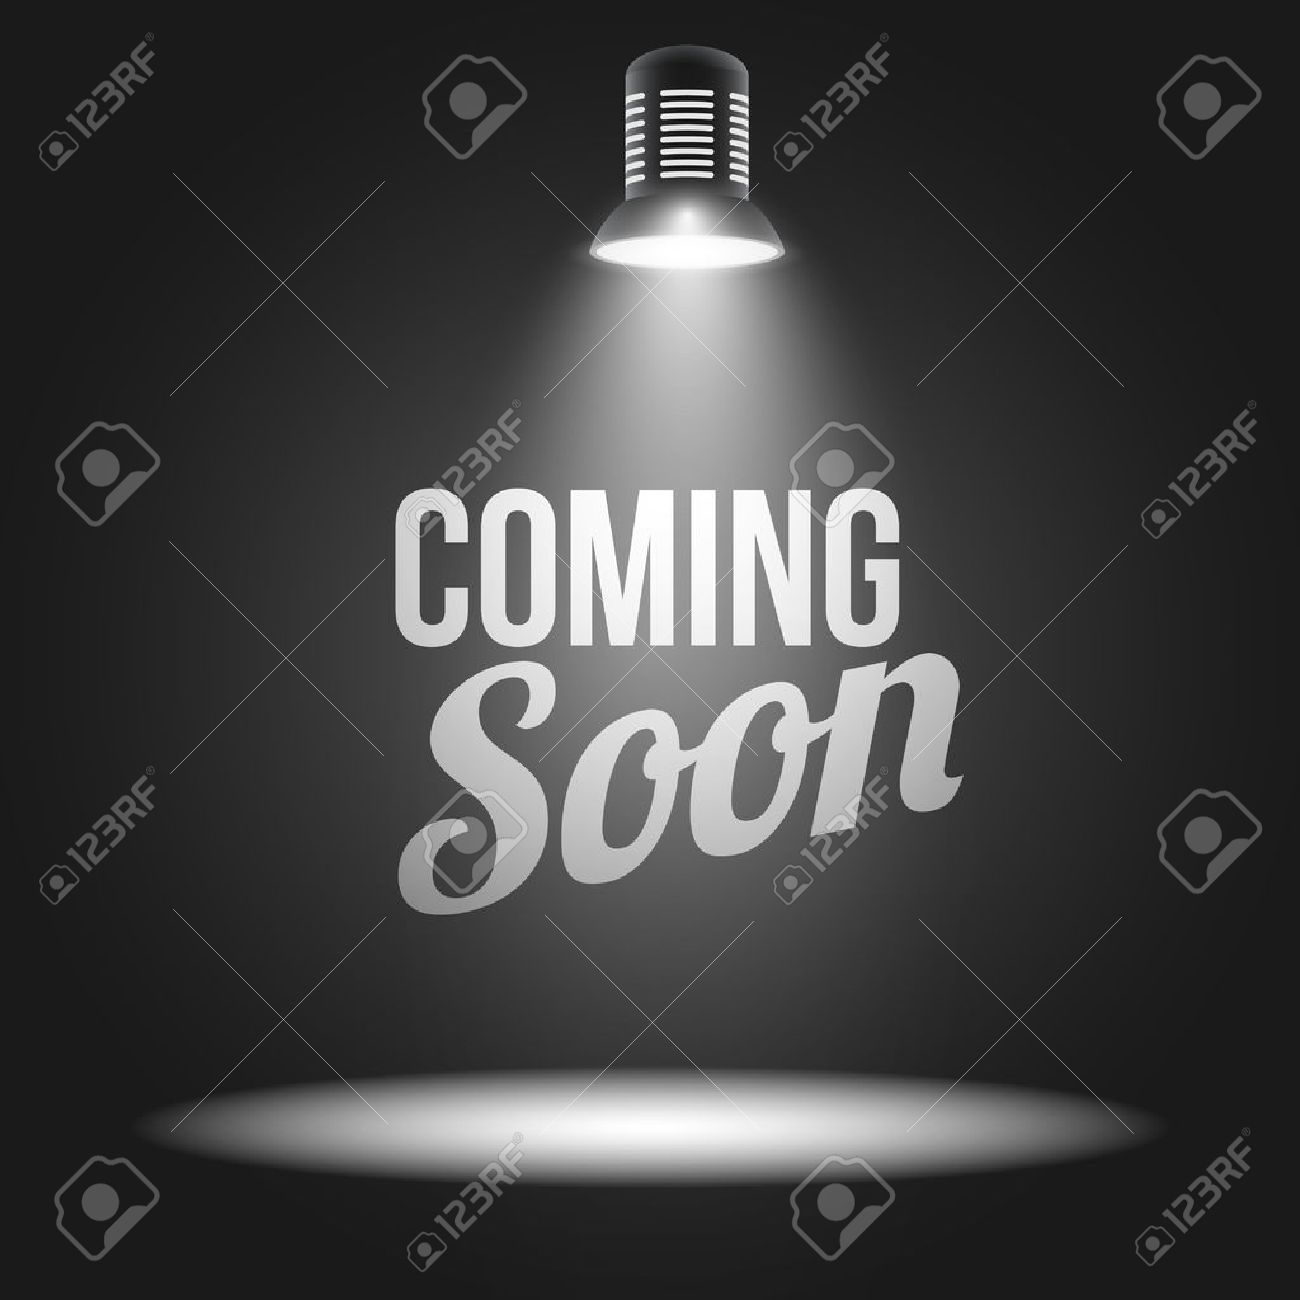 Light Projector Coming Soon Message Illuminated With Light Projector Blank Stage